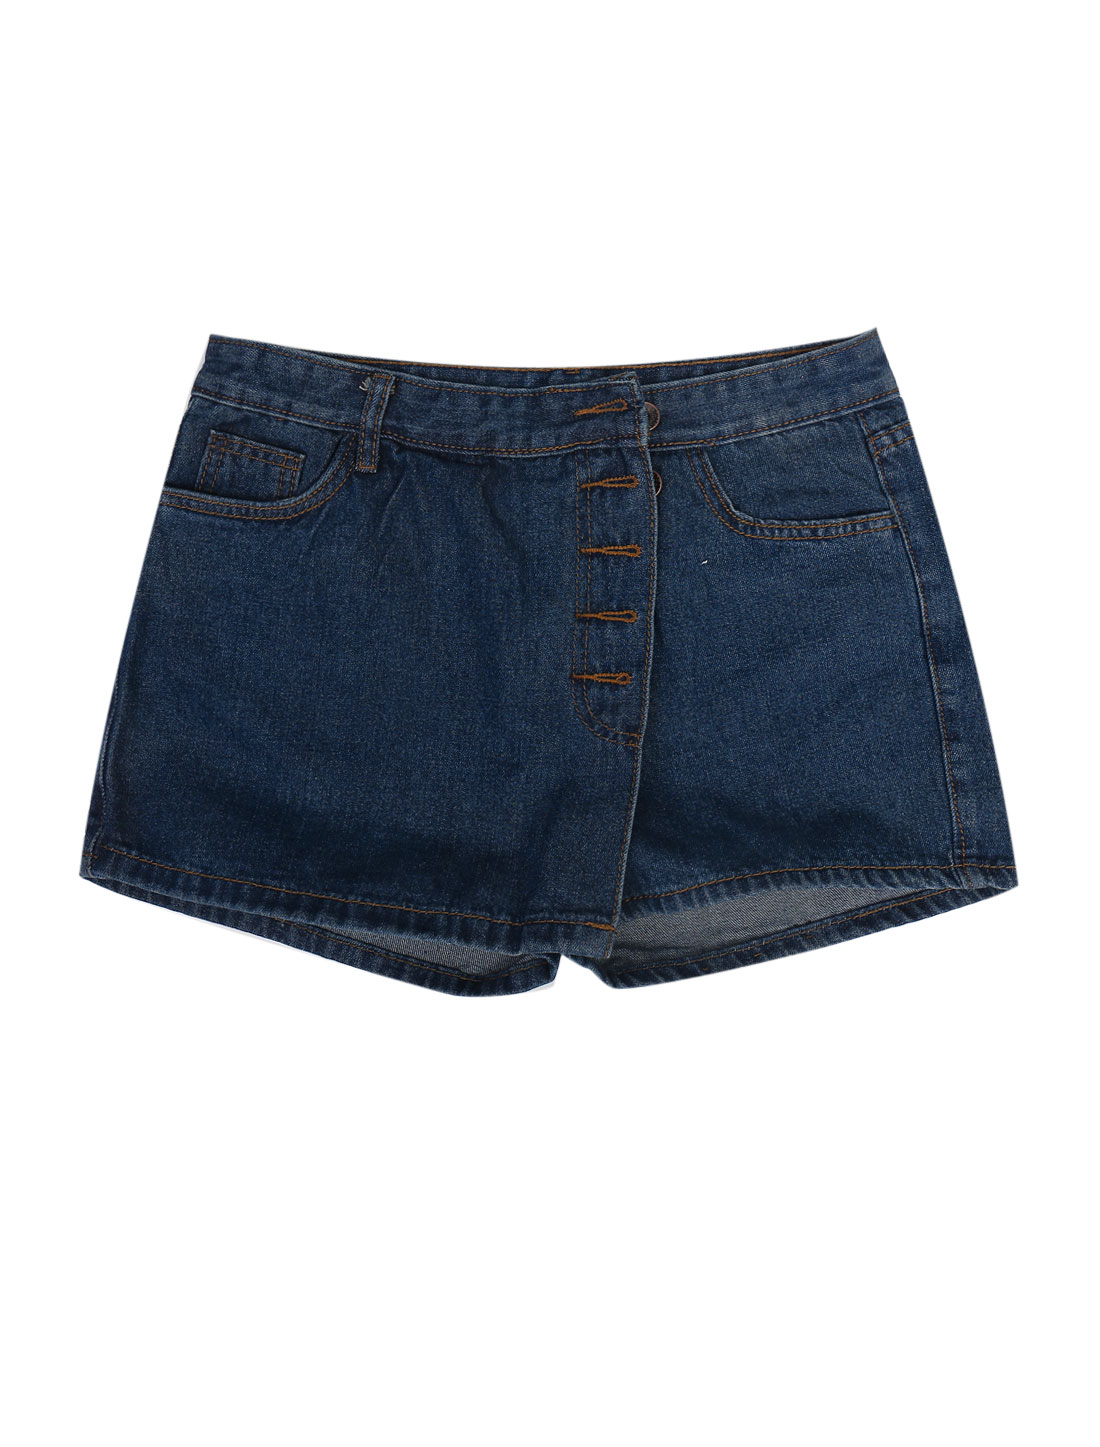 Lady Belt Loop Button Closure Casual Denim Skort Dark Blue M